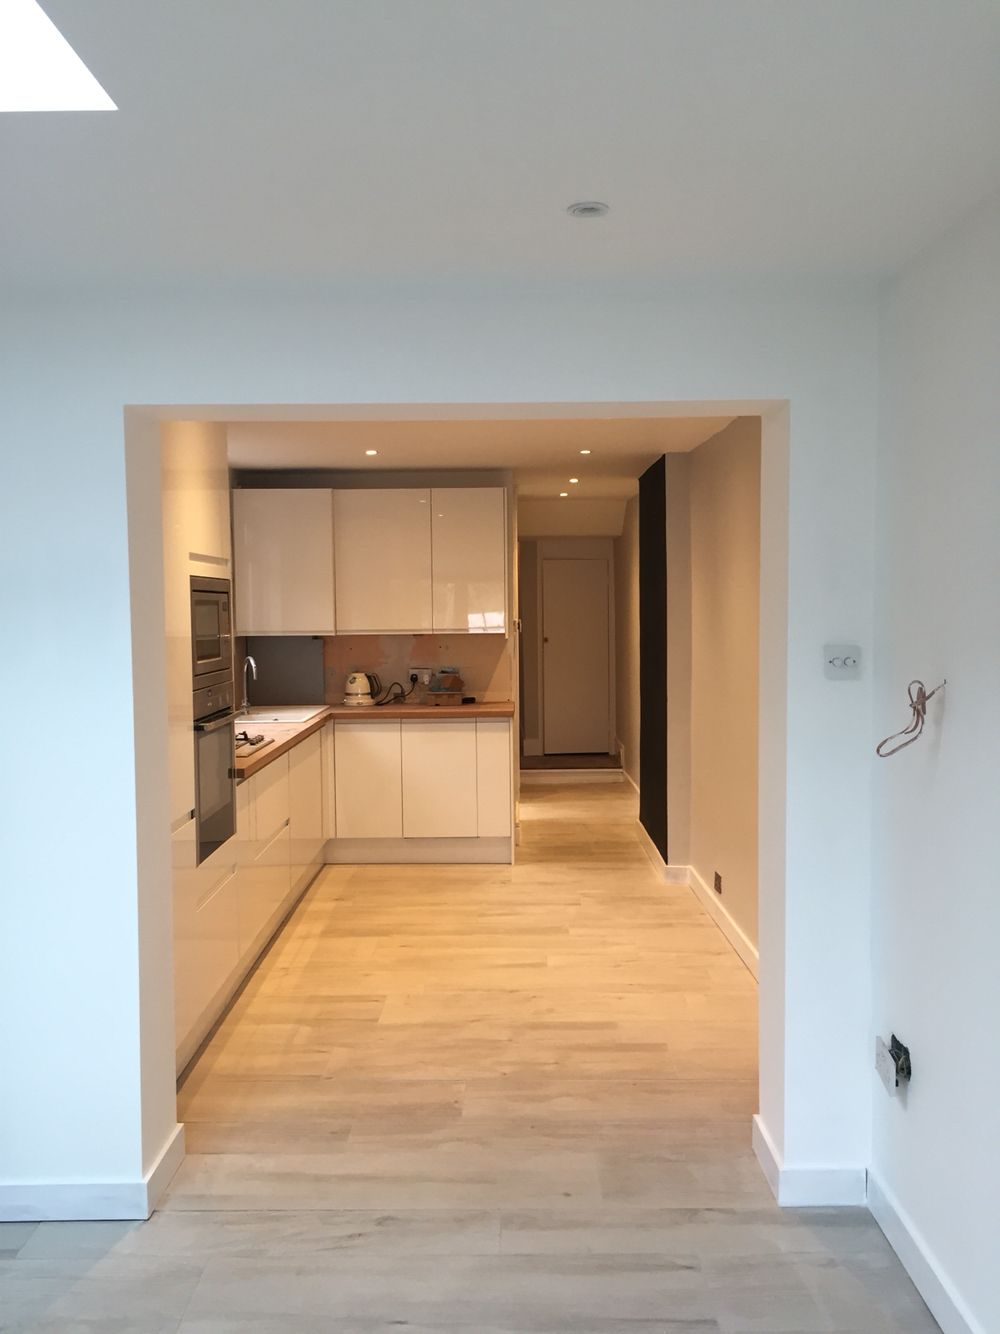 Kitchen progress howdens white gloss handless units with solid howdens white gloss handless units with solid full stave rustic oak worktops off white wood effect porcelain floor tiles doublecrazyfo Image collections